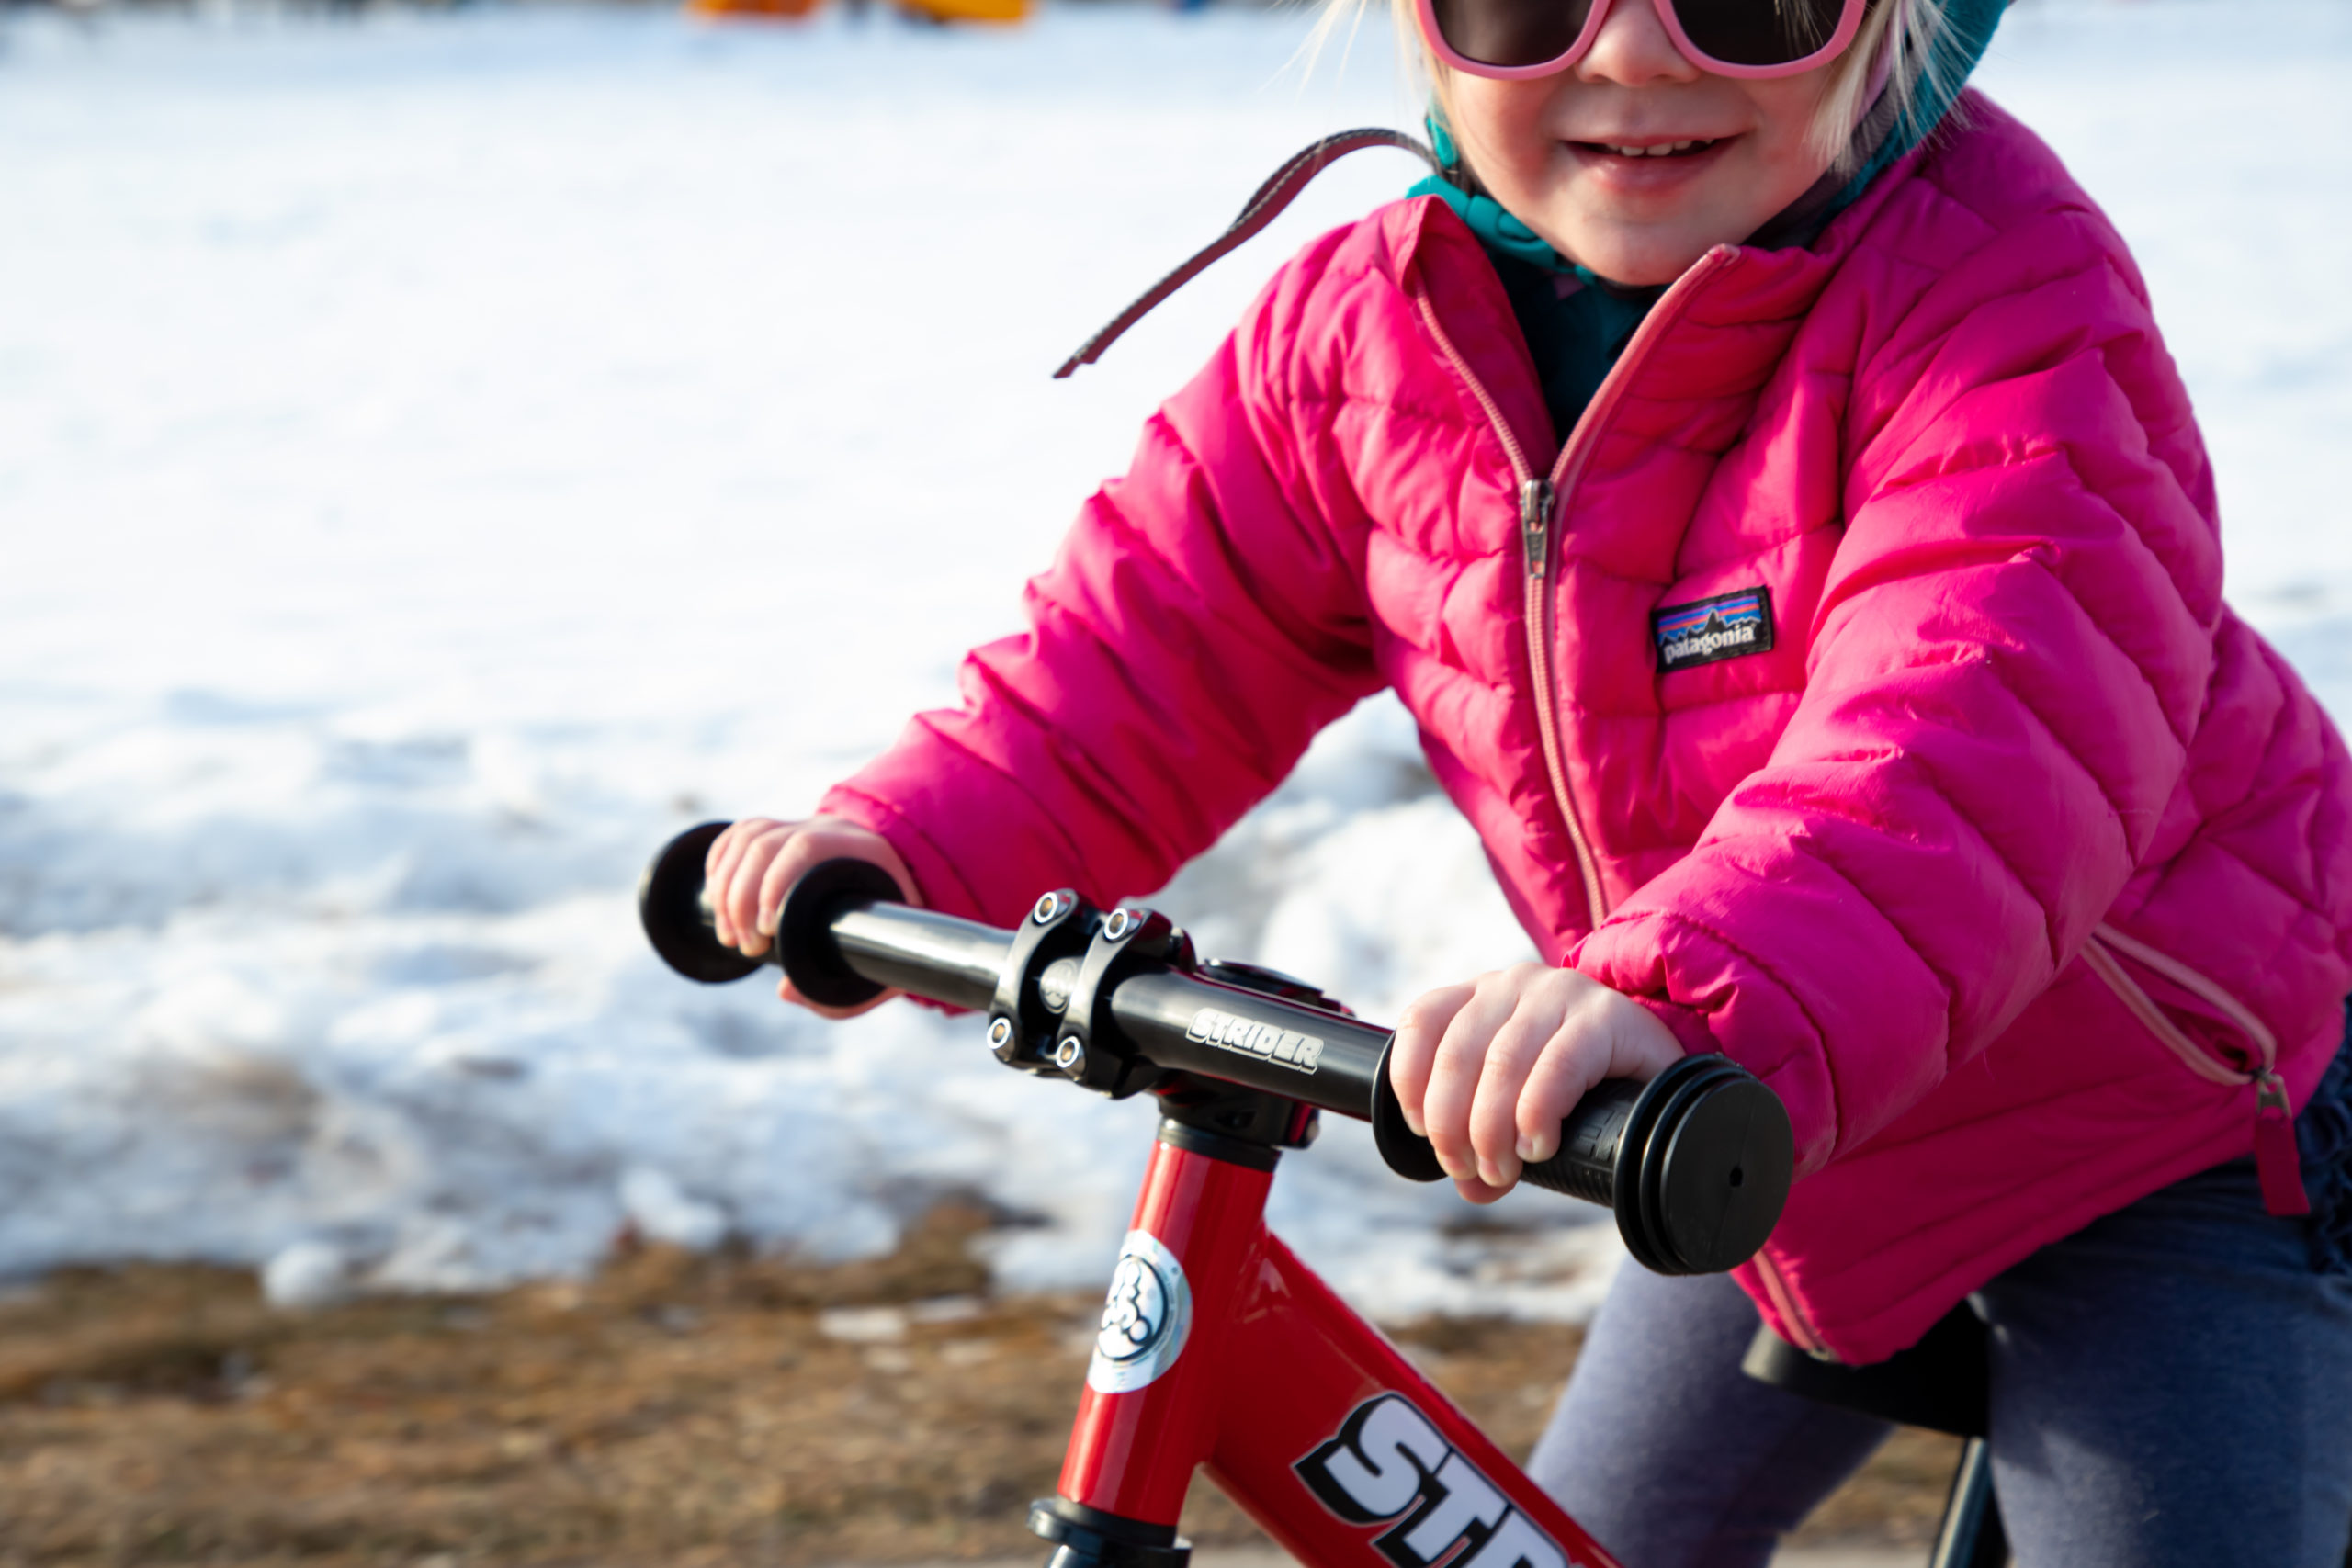 Close-up of Girl riding red 12 Sport with Strider Aluminum Flat Handlebar